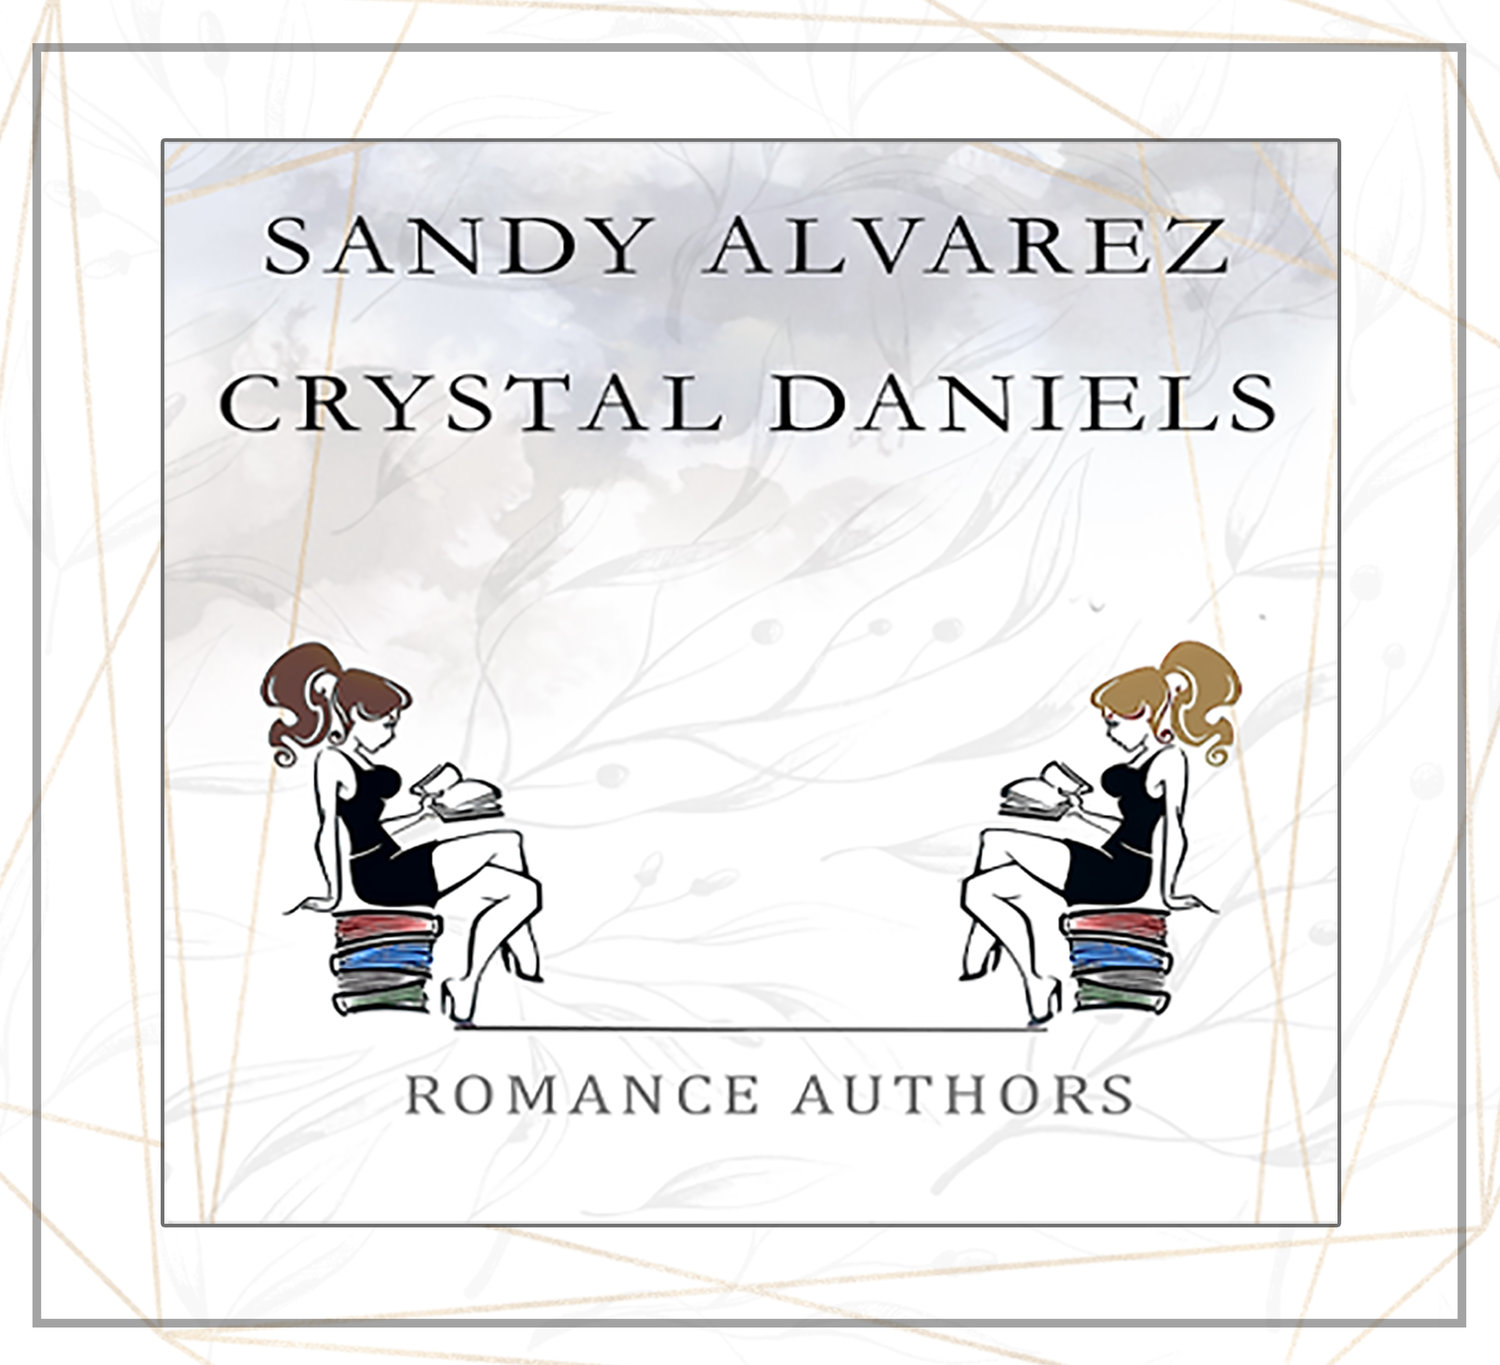 Crystal Daniels and Sandy Alvarez